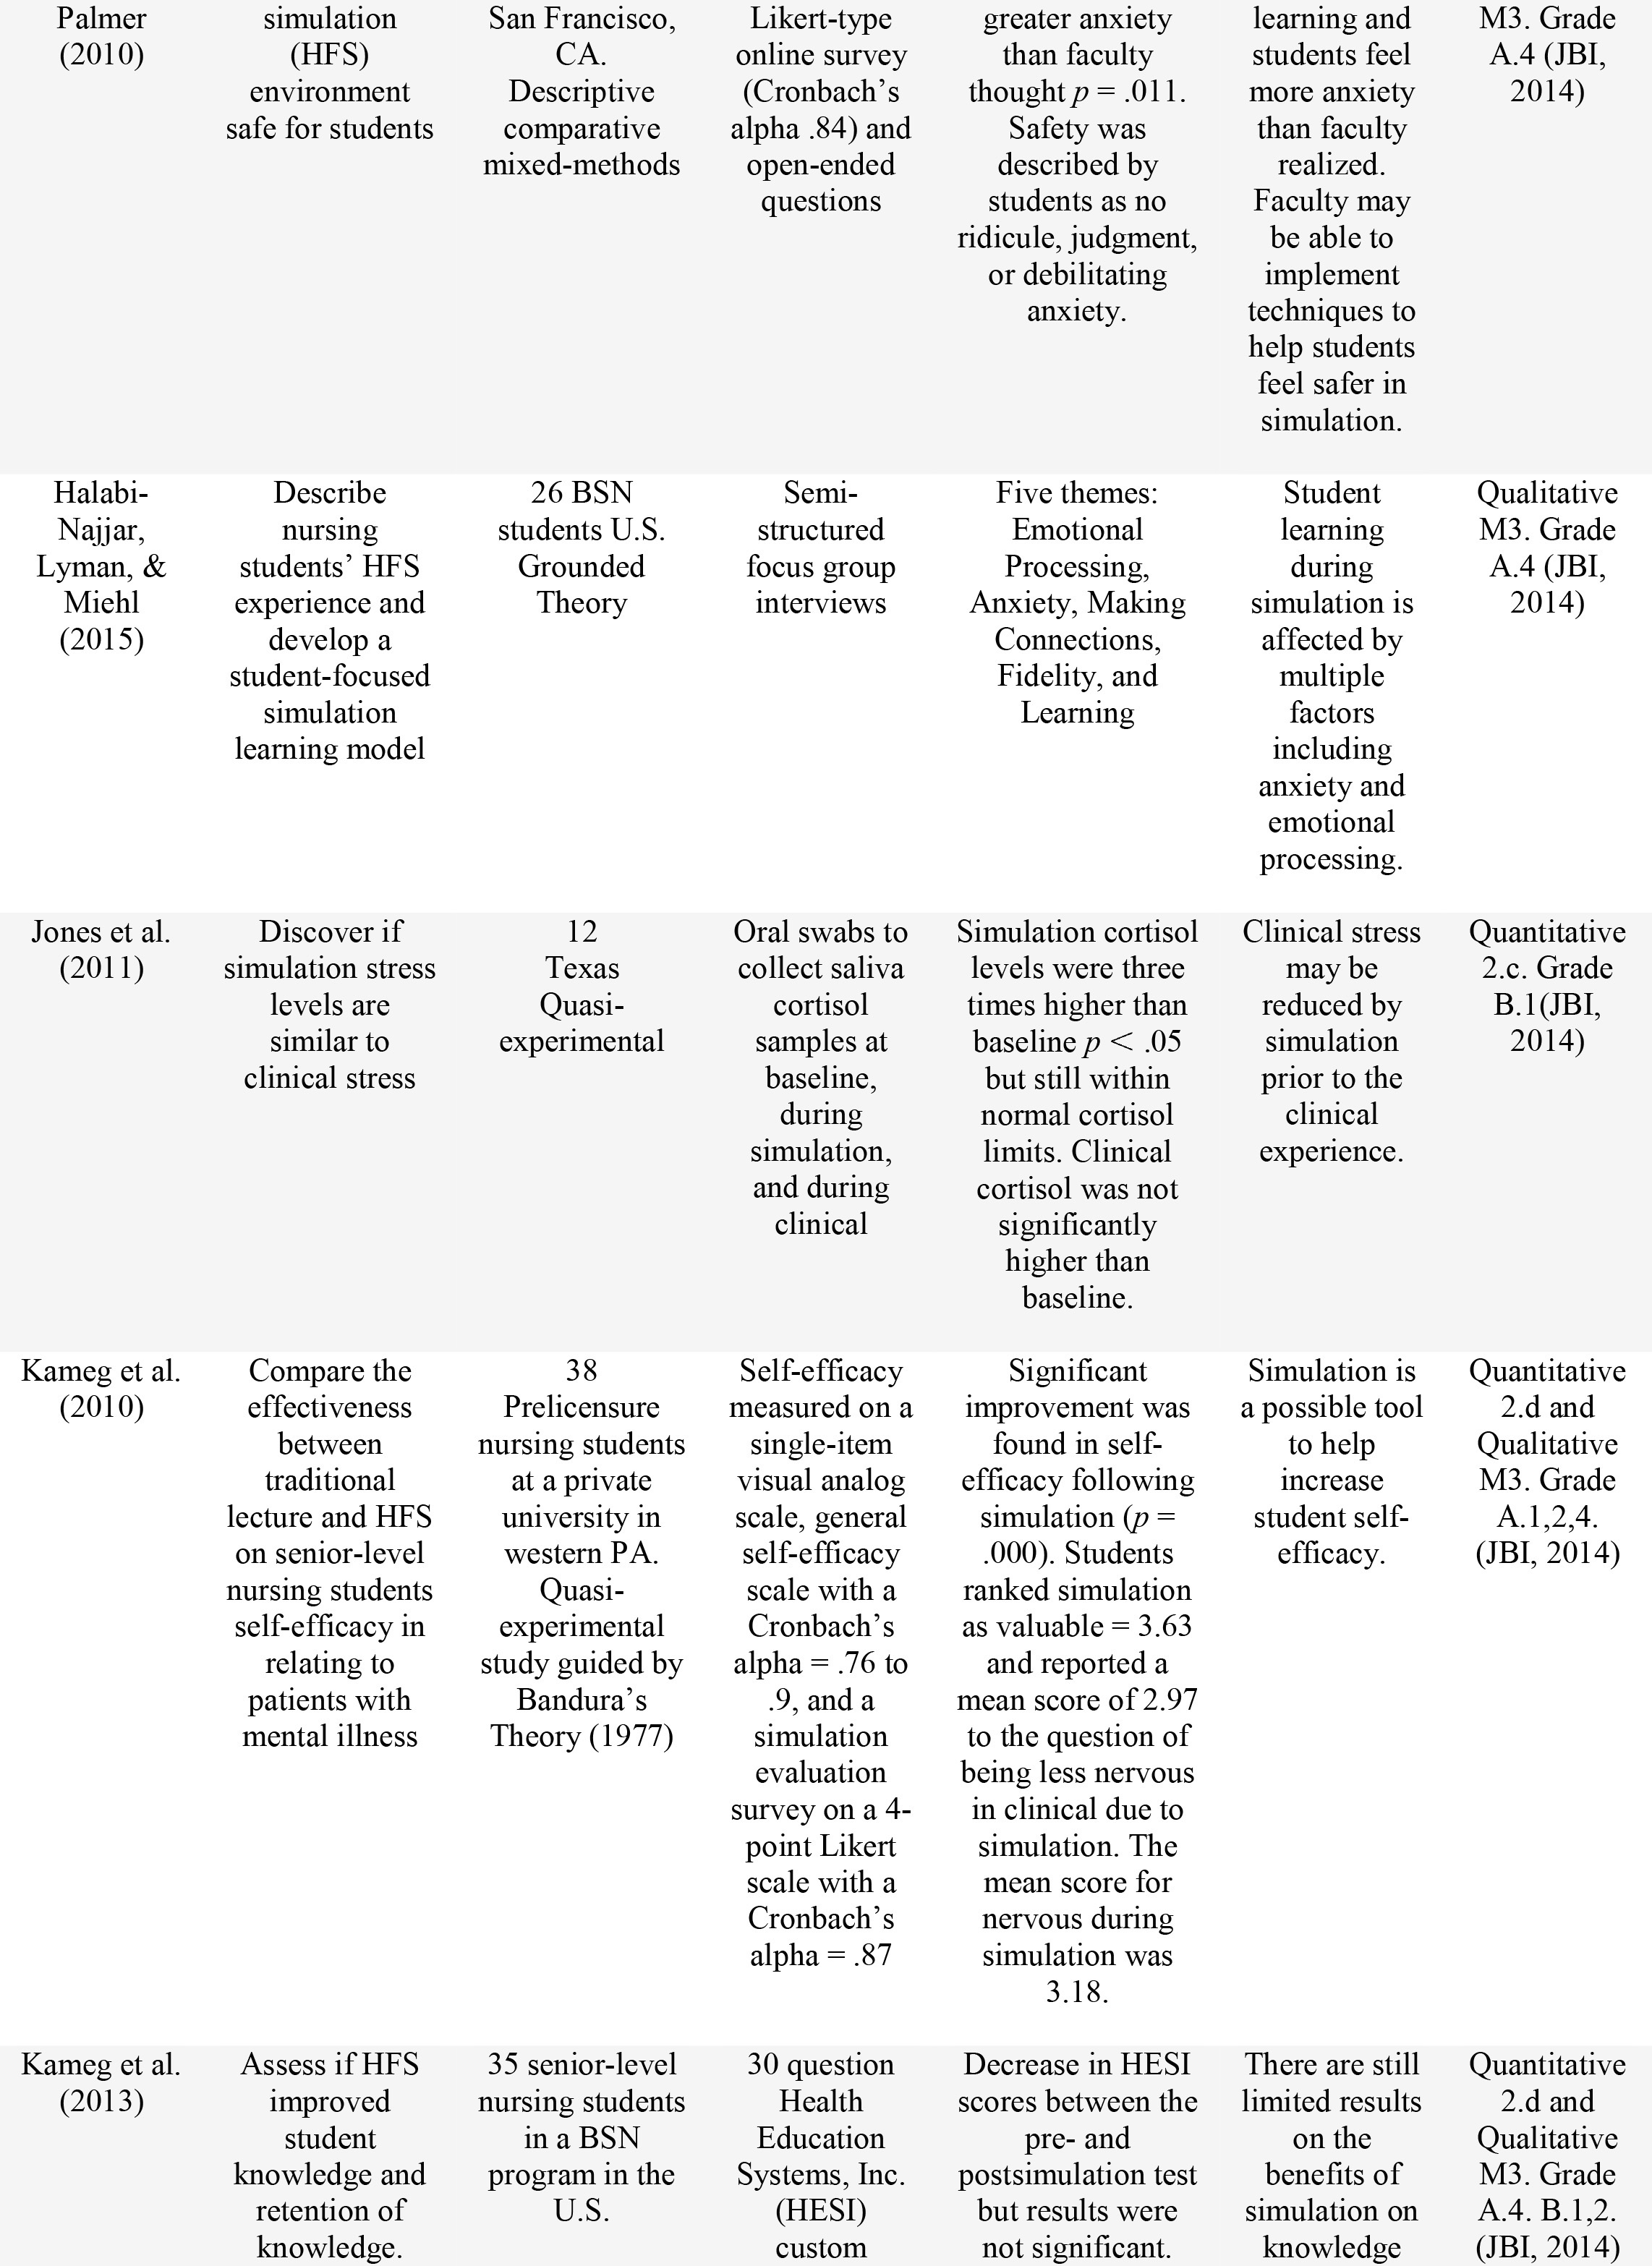 Effects of Simulation on Nursing Student Stress: An Integrative Review